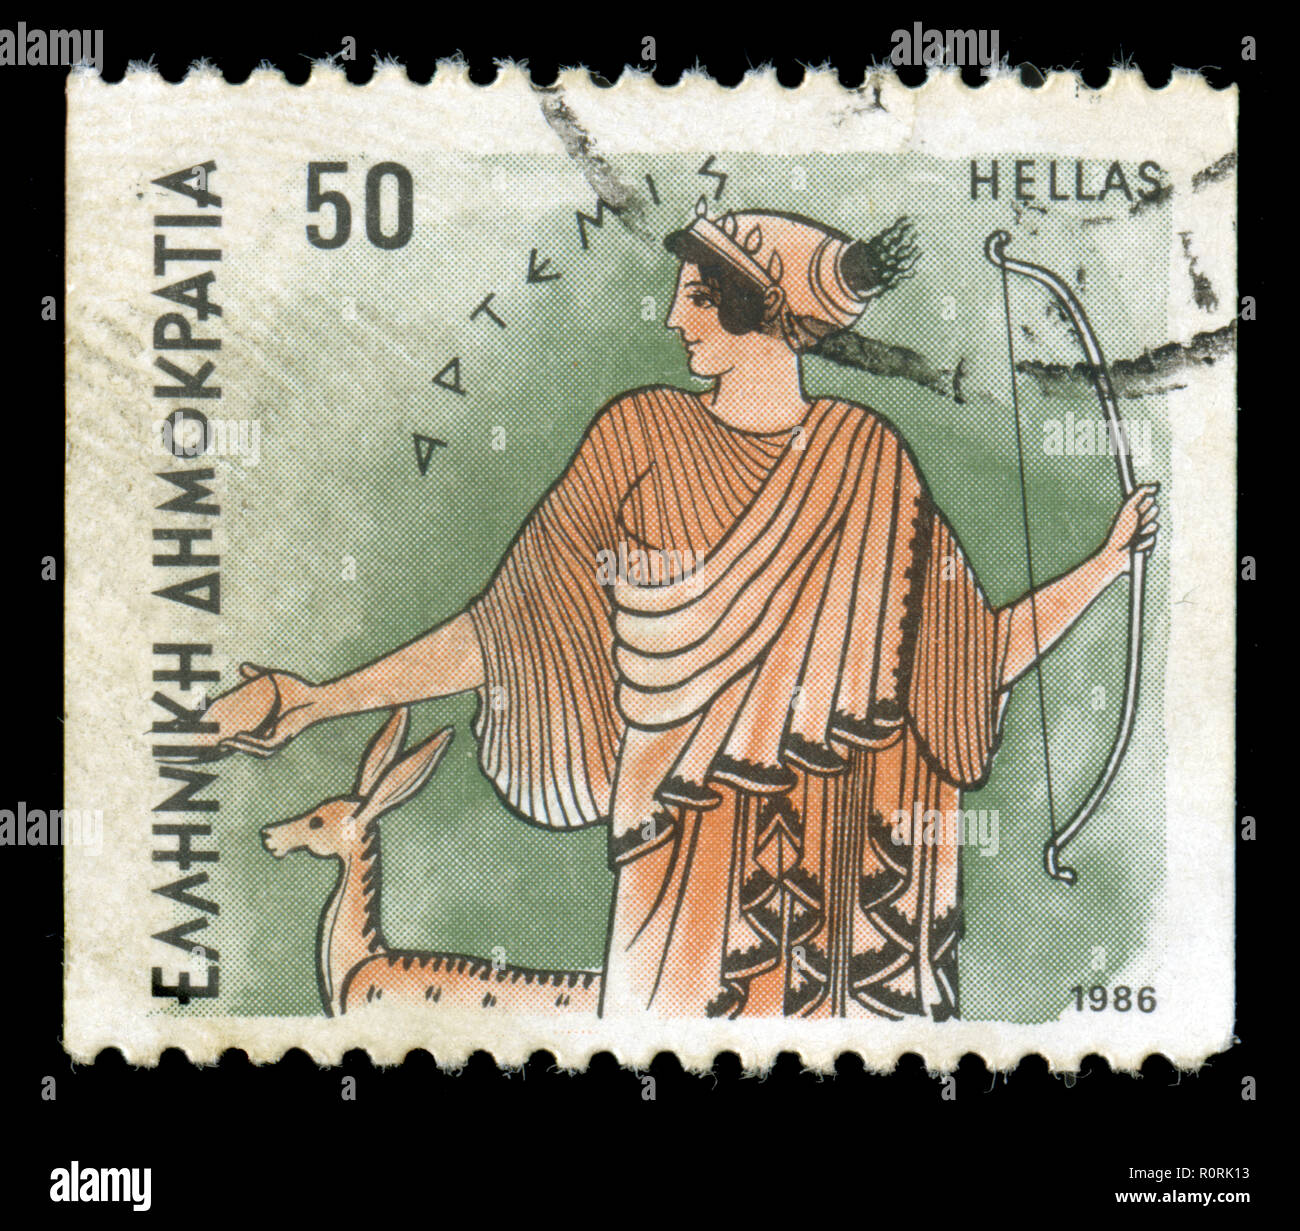 Postage stamp from Greece in the Greek Mythology series issued in 1986 - Stock Image